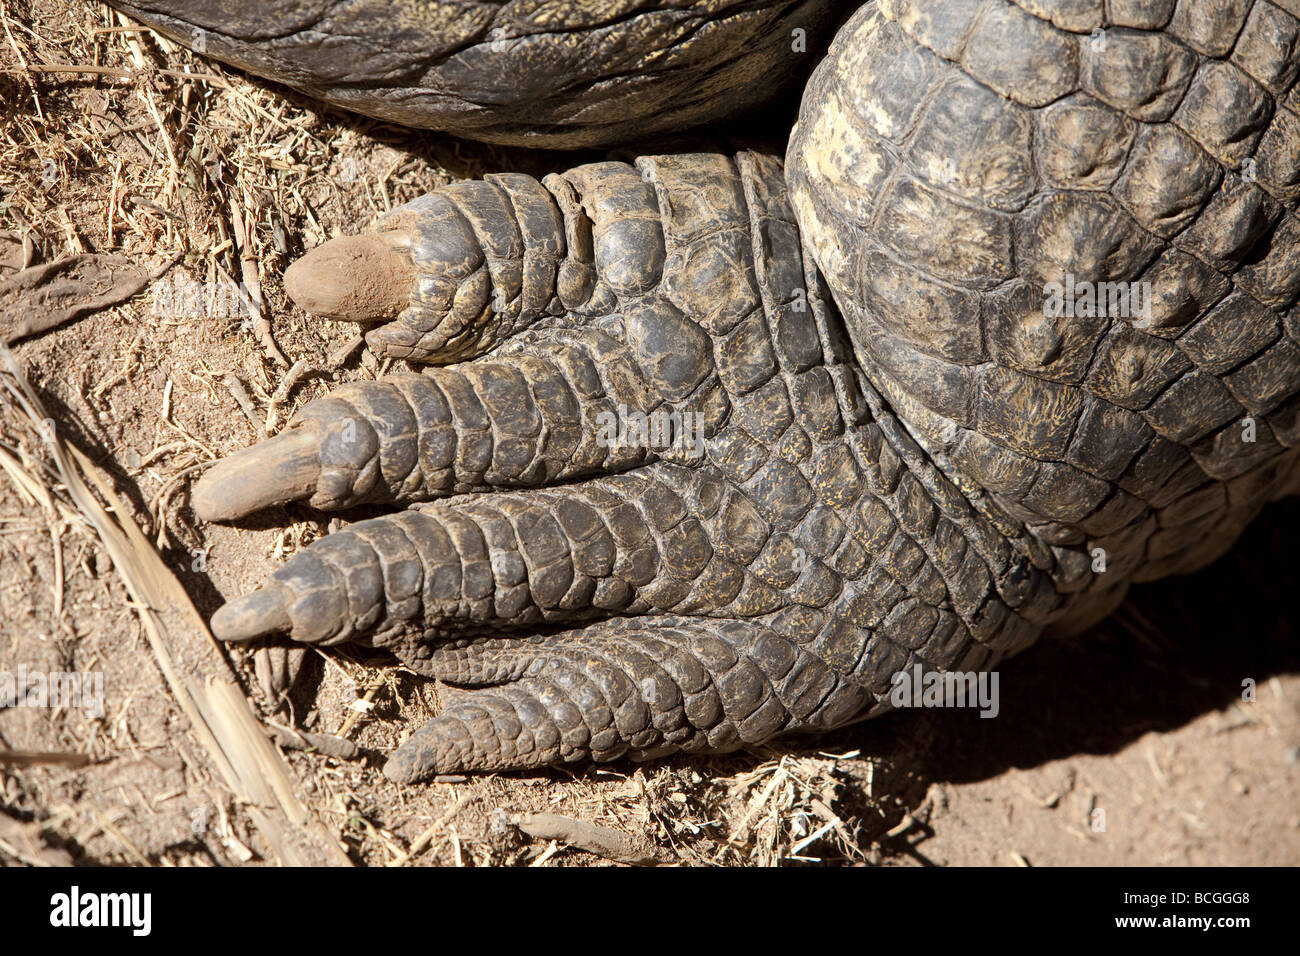 Close up shot of a Nile crocodile's back foot - Stock Image